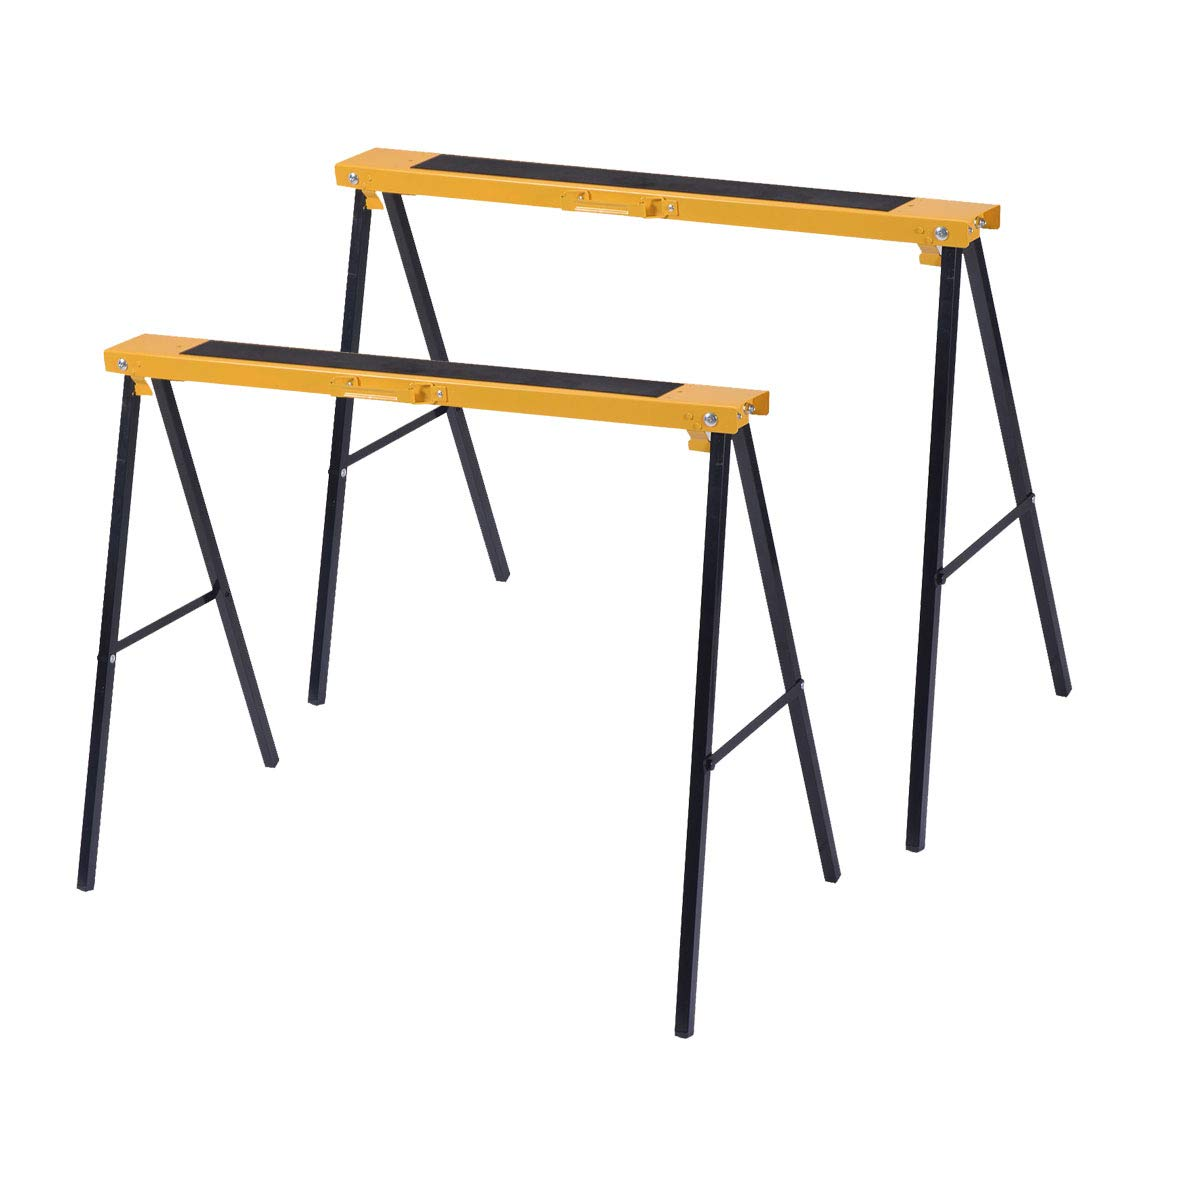 GJH One Heavy Duty Saw Horse Steel Folding Legs Portable Sawhorse Pair 2 Pack